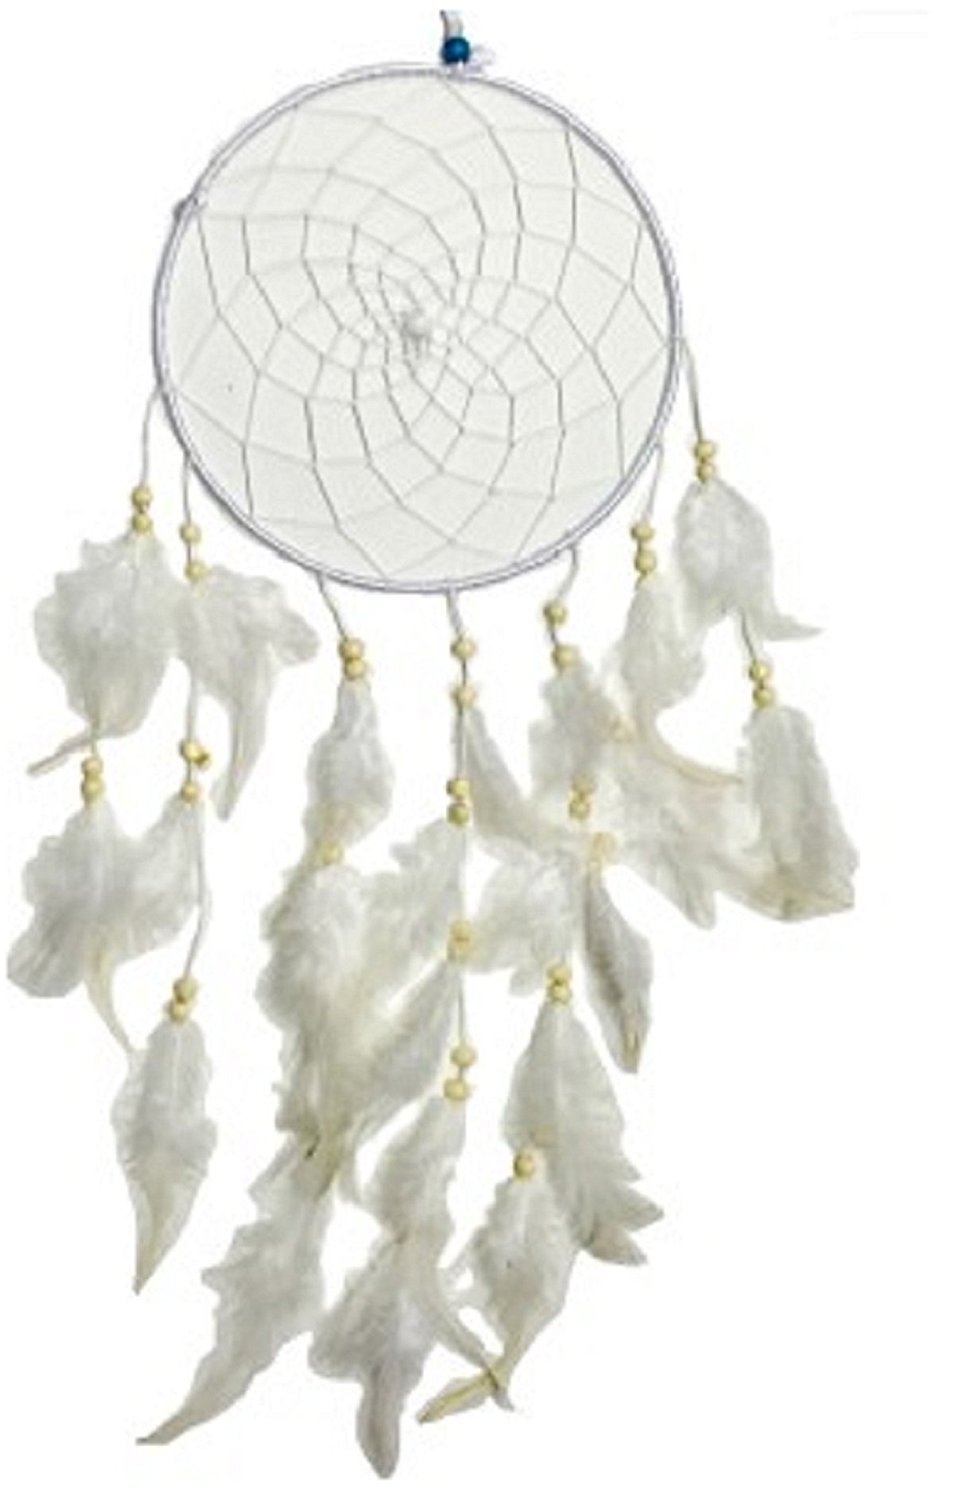 Starnk Dream Catcher Handmade Traditional White Colour with White Stones/Round Circles with Feathers Beads for Home Bedroom Decor, Car, Wall Hanging Ornament